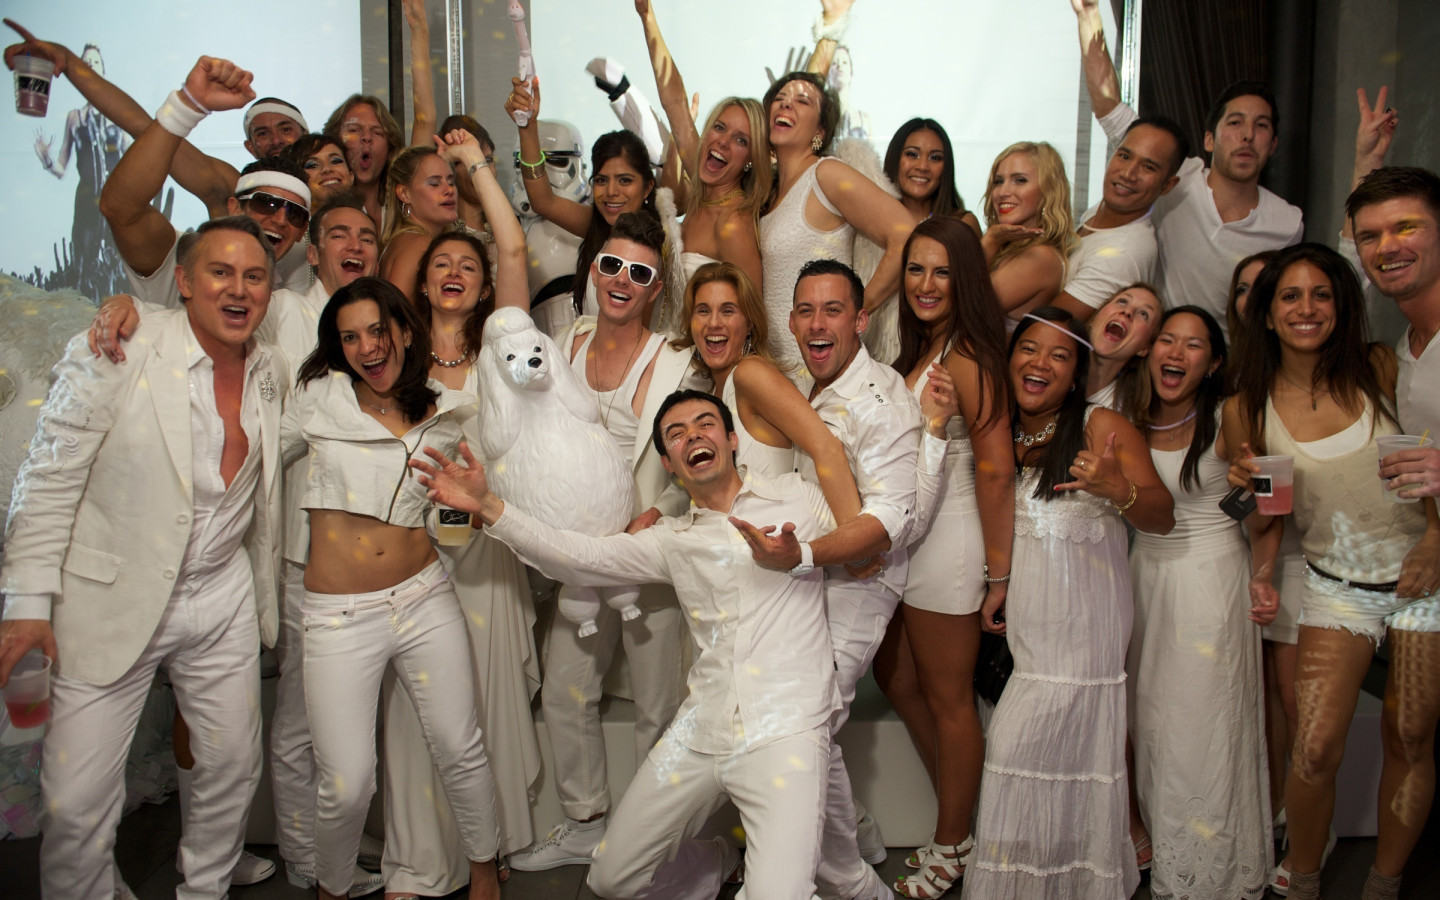 The White Party - This event has passed